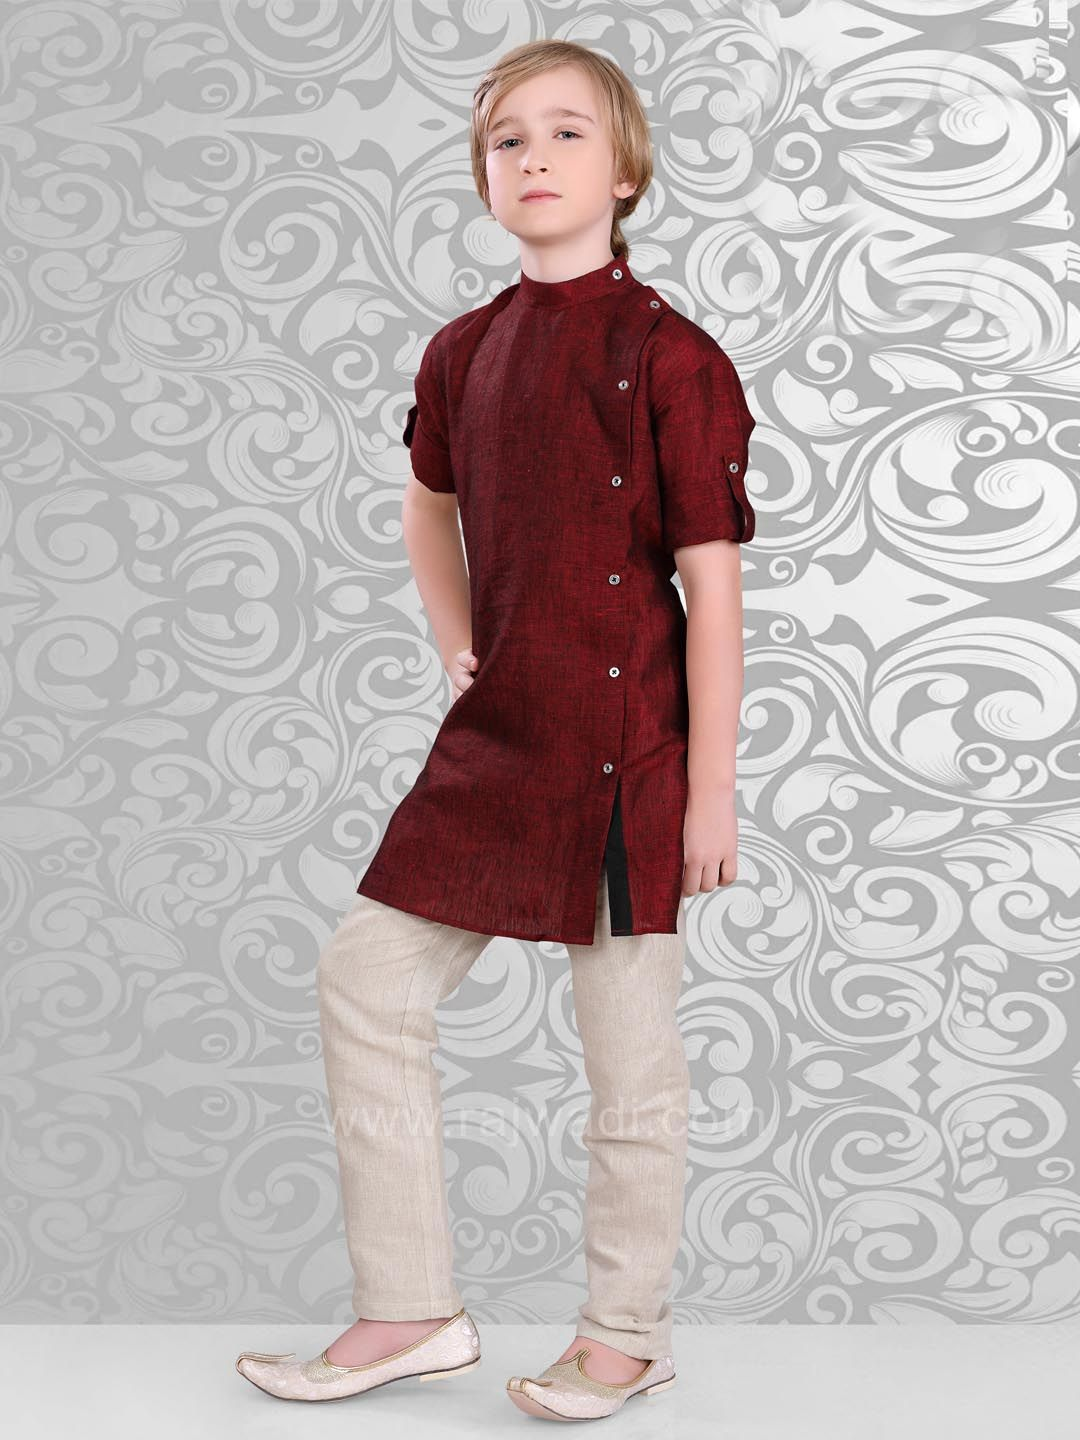 Pin On Ethnic Fashion For Boys